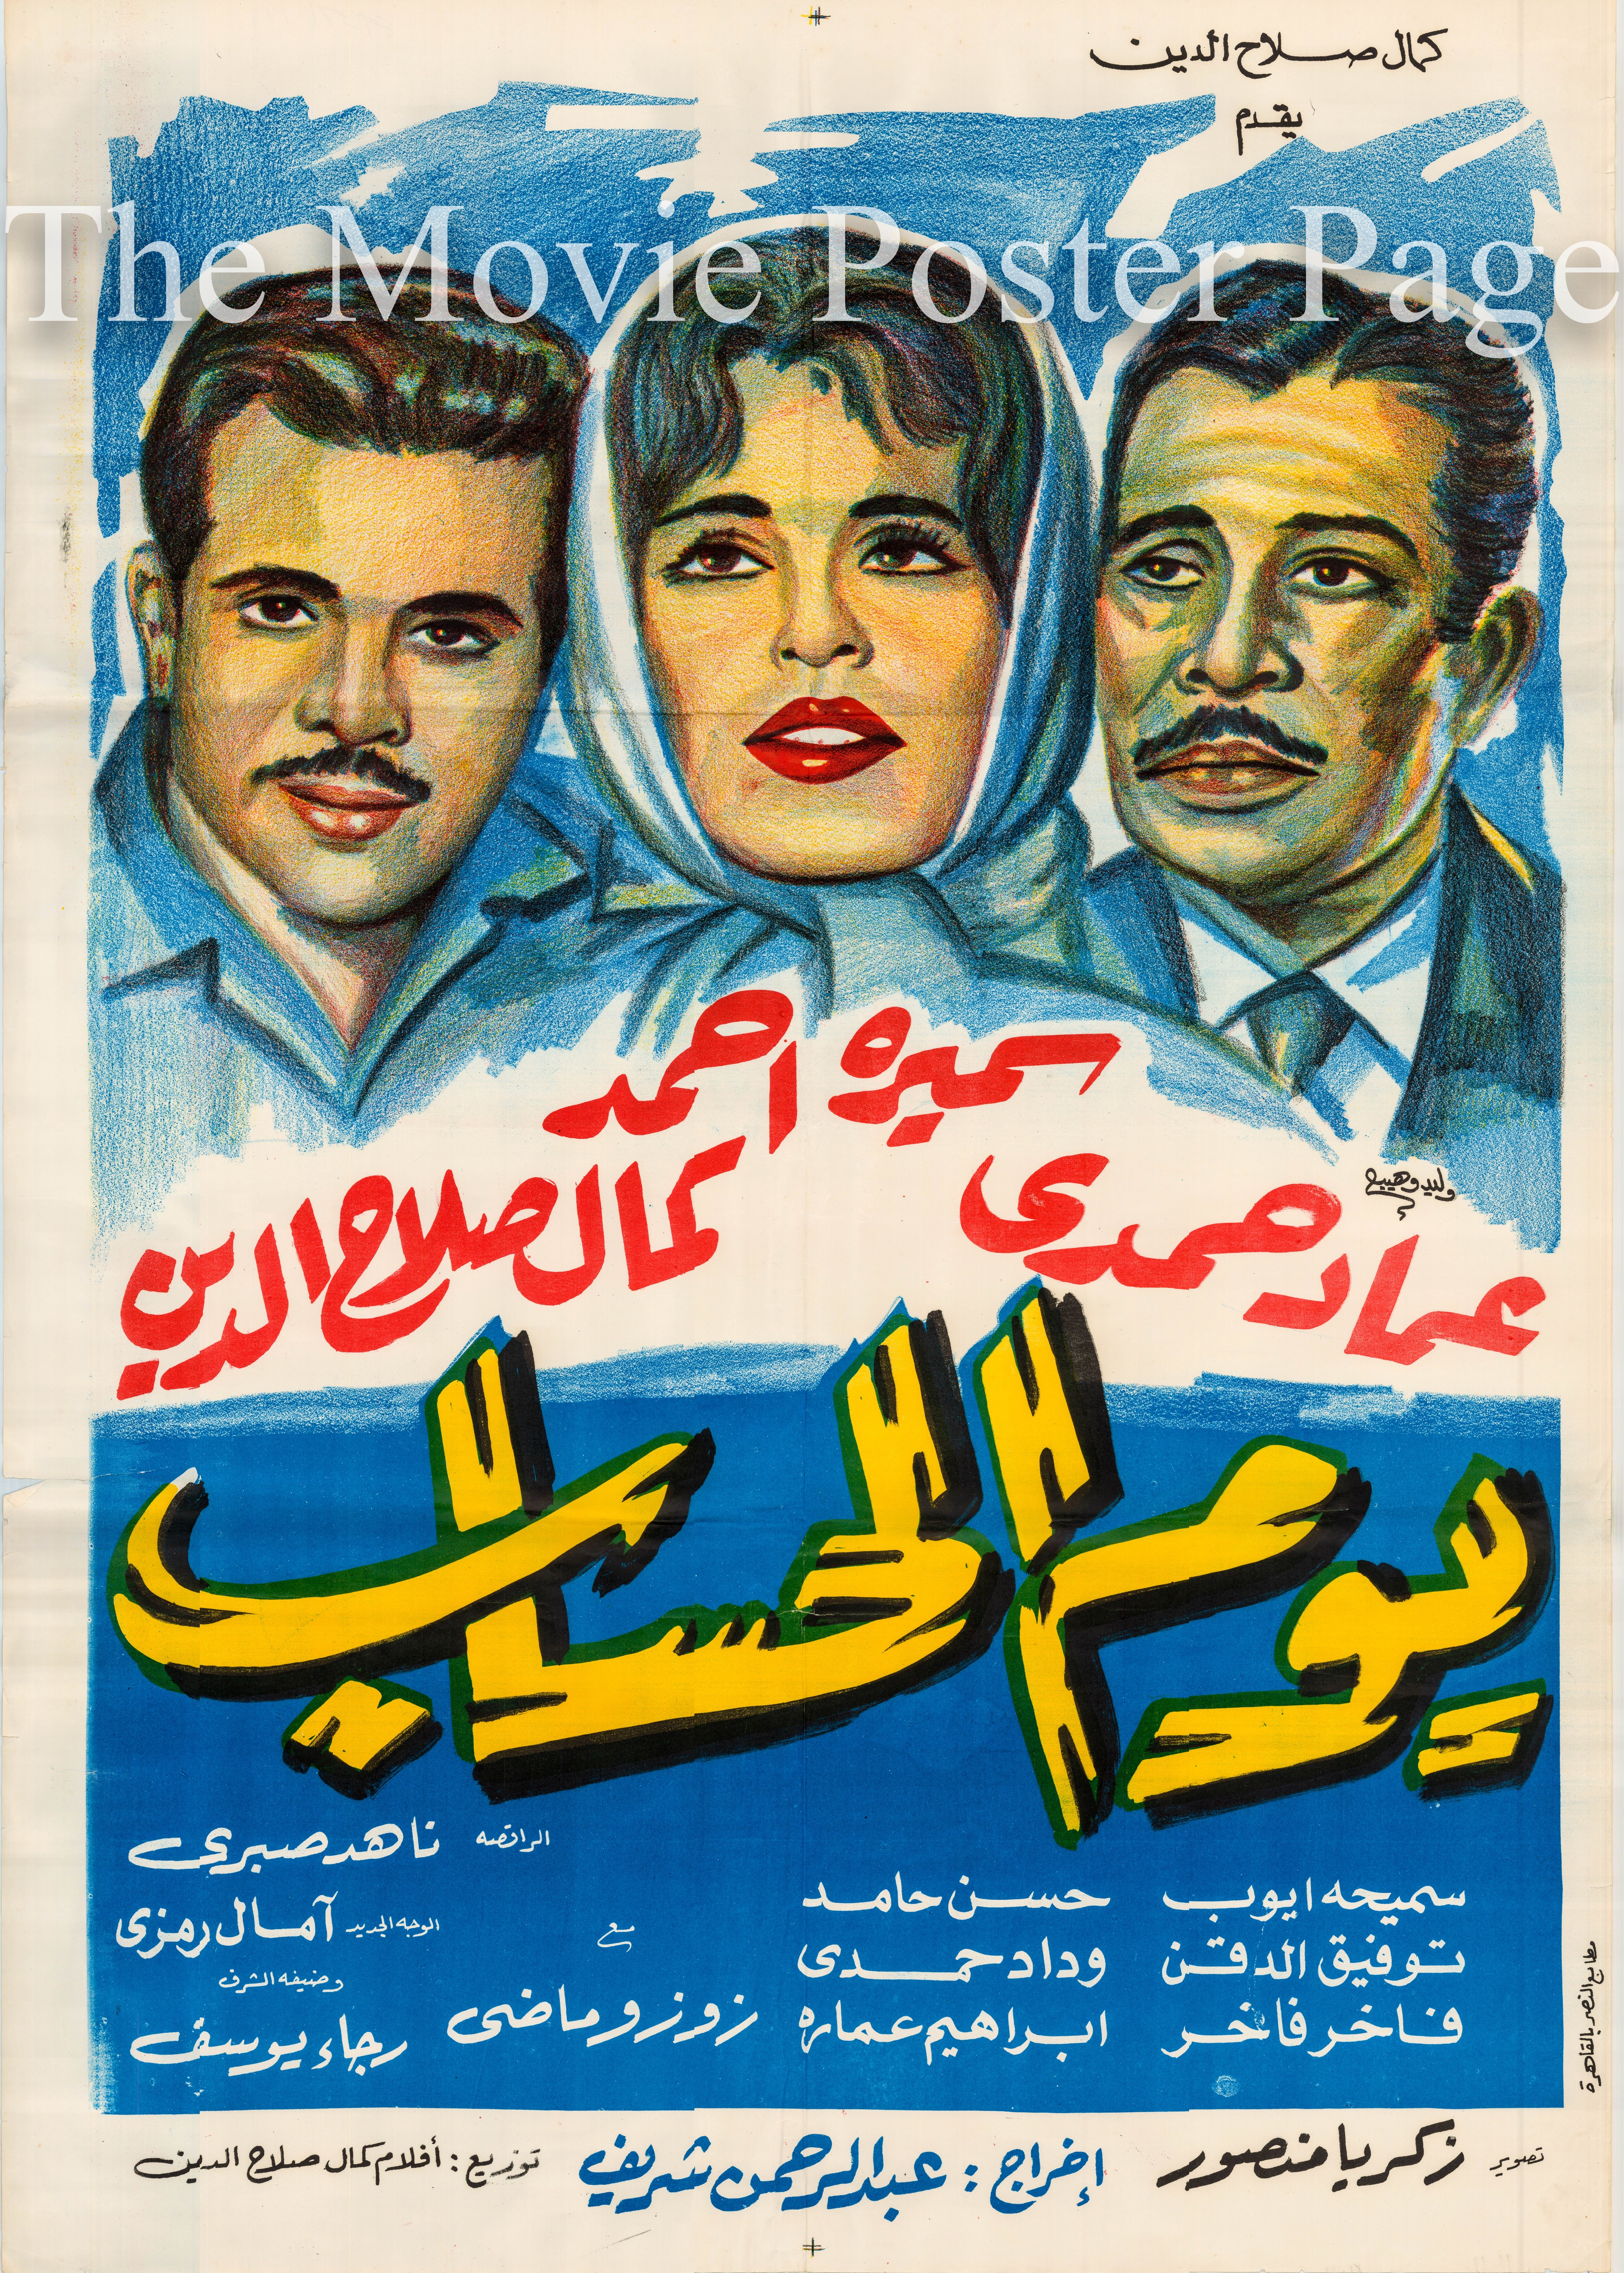 This is an Egyptian poster for the 1962 Abdel Rahman Sharif film Judgment Day starring Samira Ahmed as Yasmin.